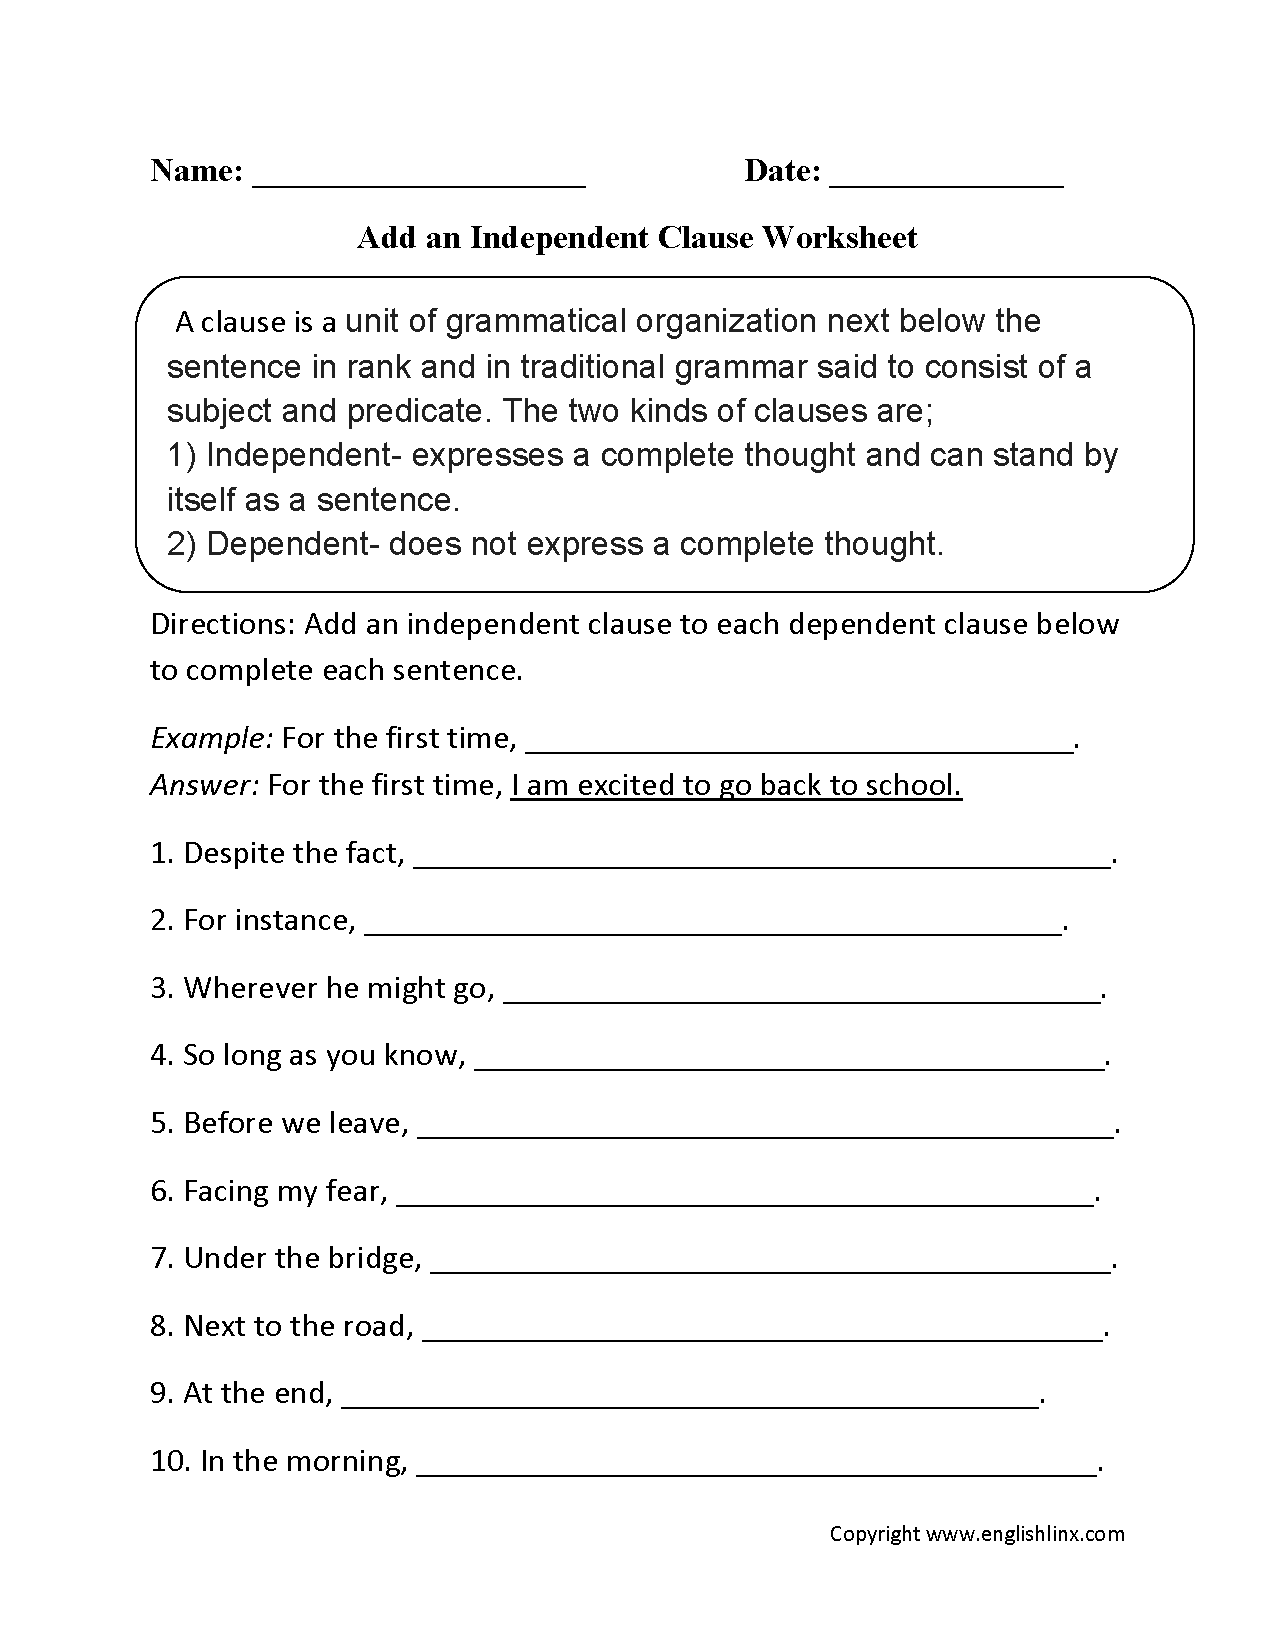 Worksheets Independent And Dependent Clauses Worksheets parts of a sentence worksheets clause add independent worksheets